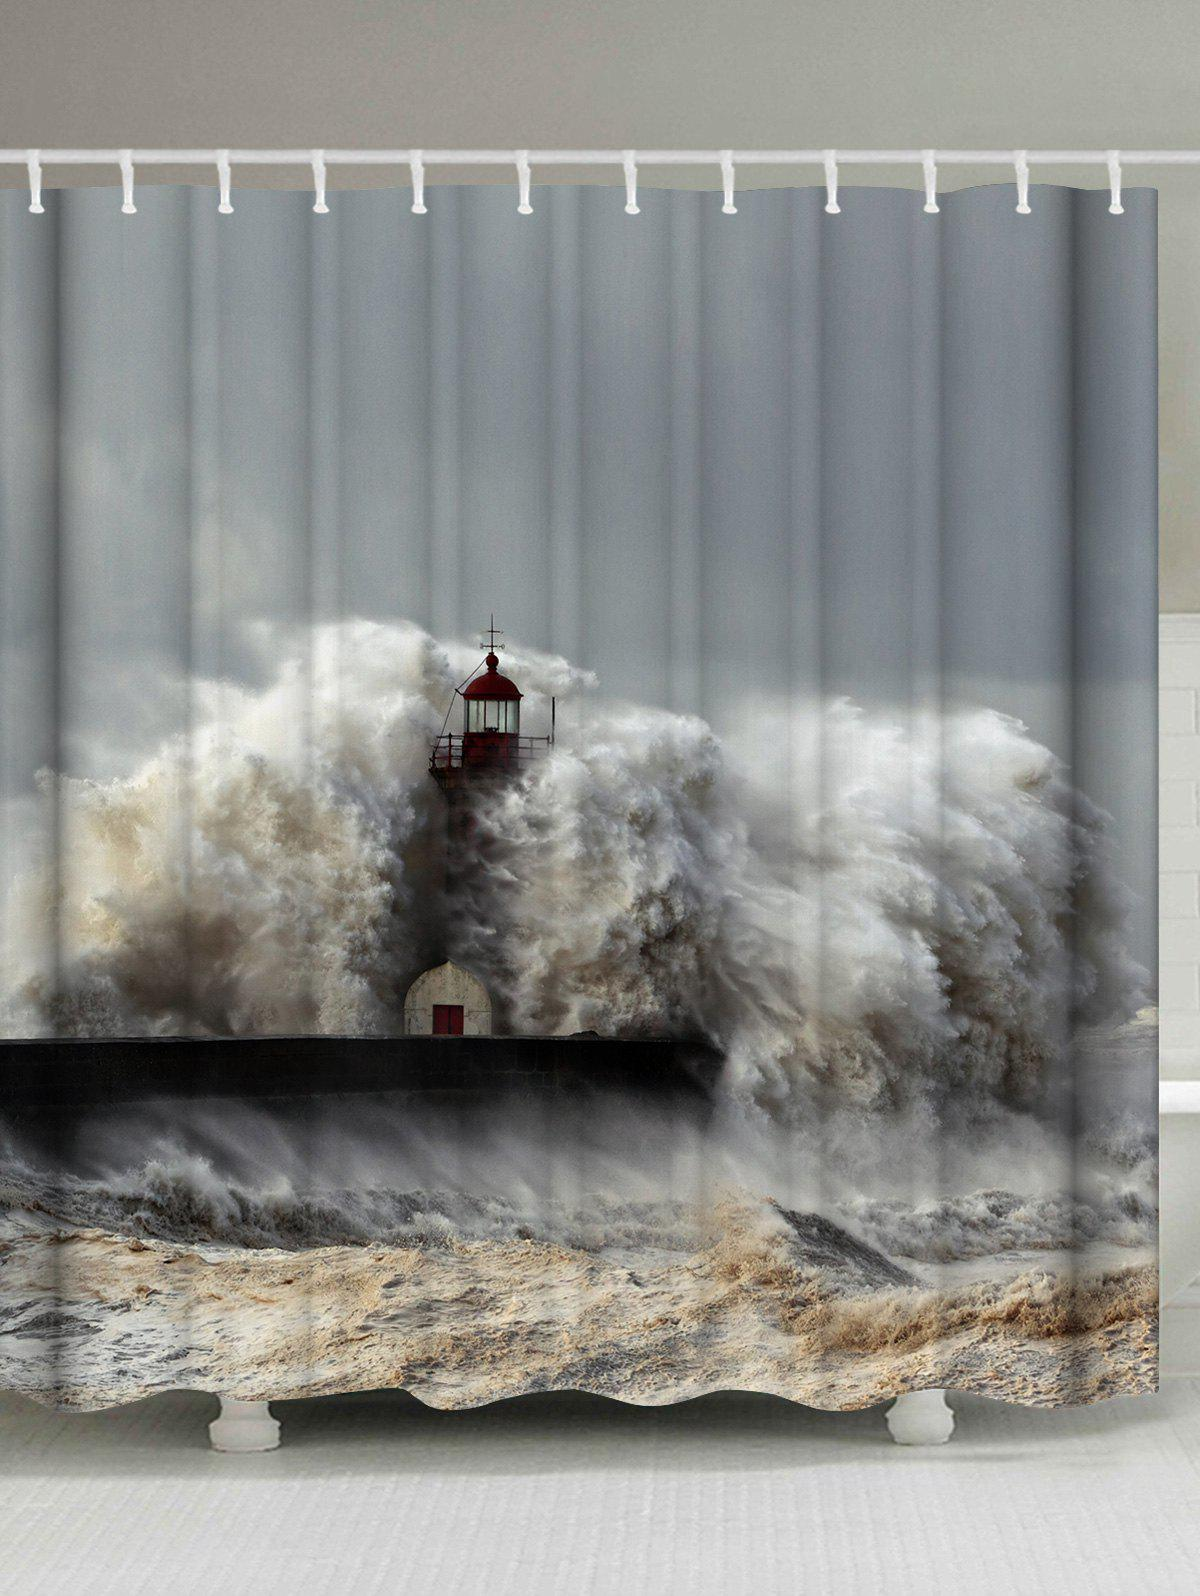 Waterproof Fabric Surge Lighthouse Shower Curtain lizard waterproof fabric shower curtain